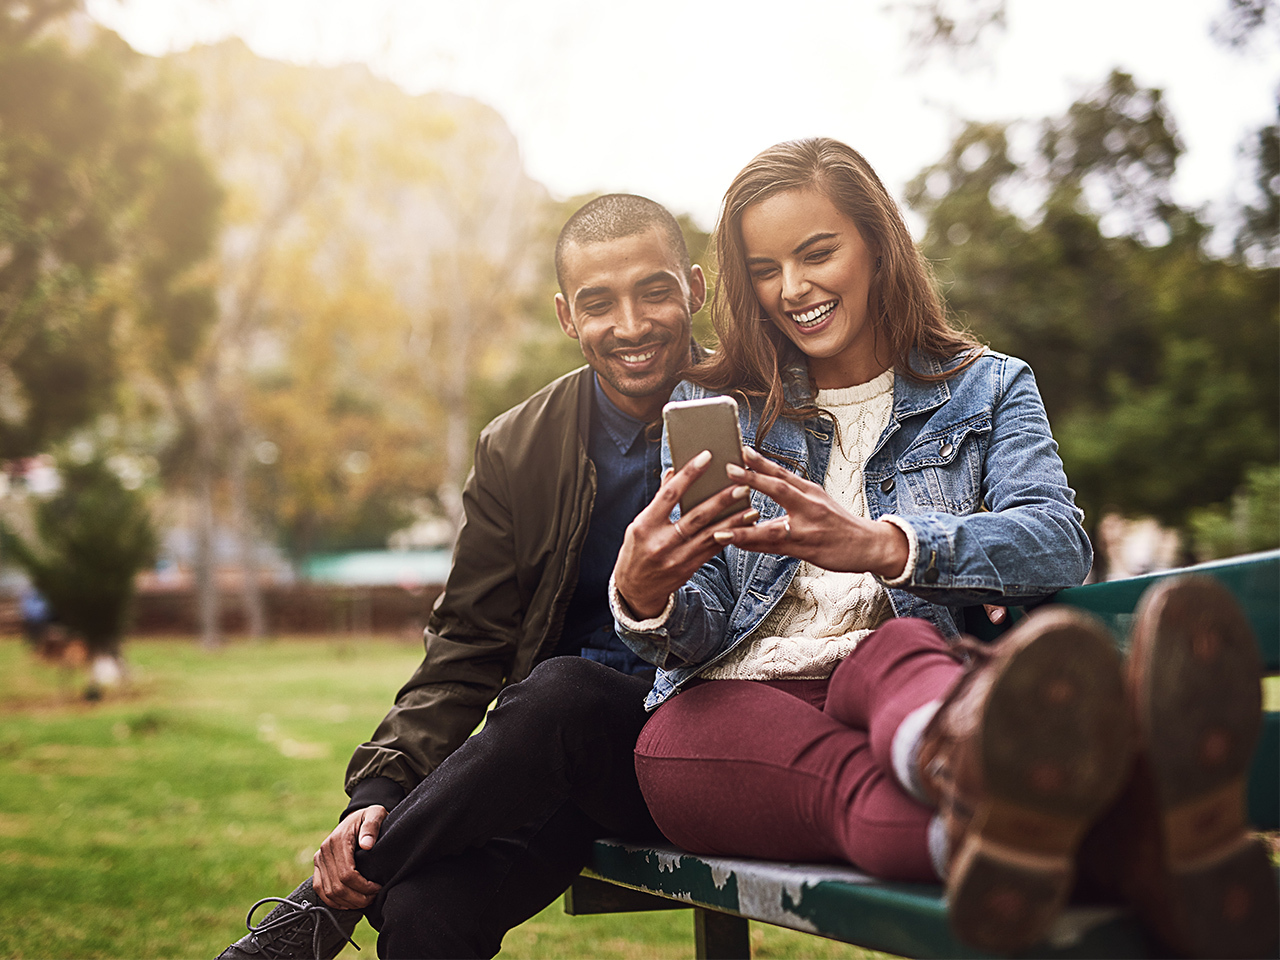 Online dating do's and don'ts